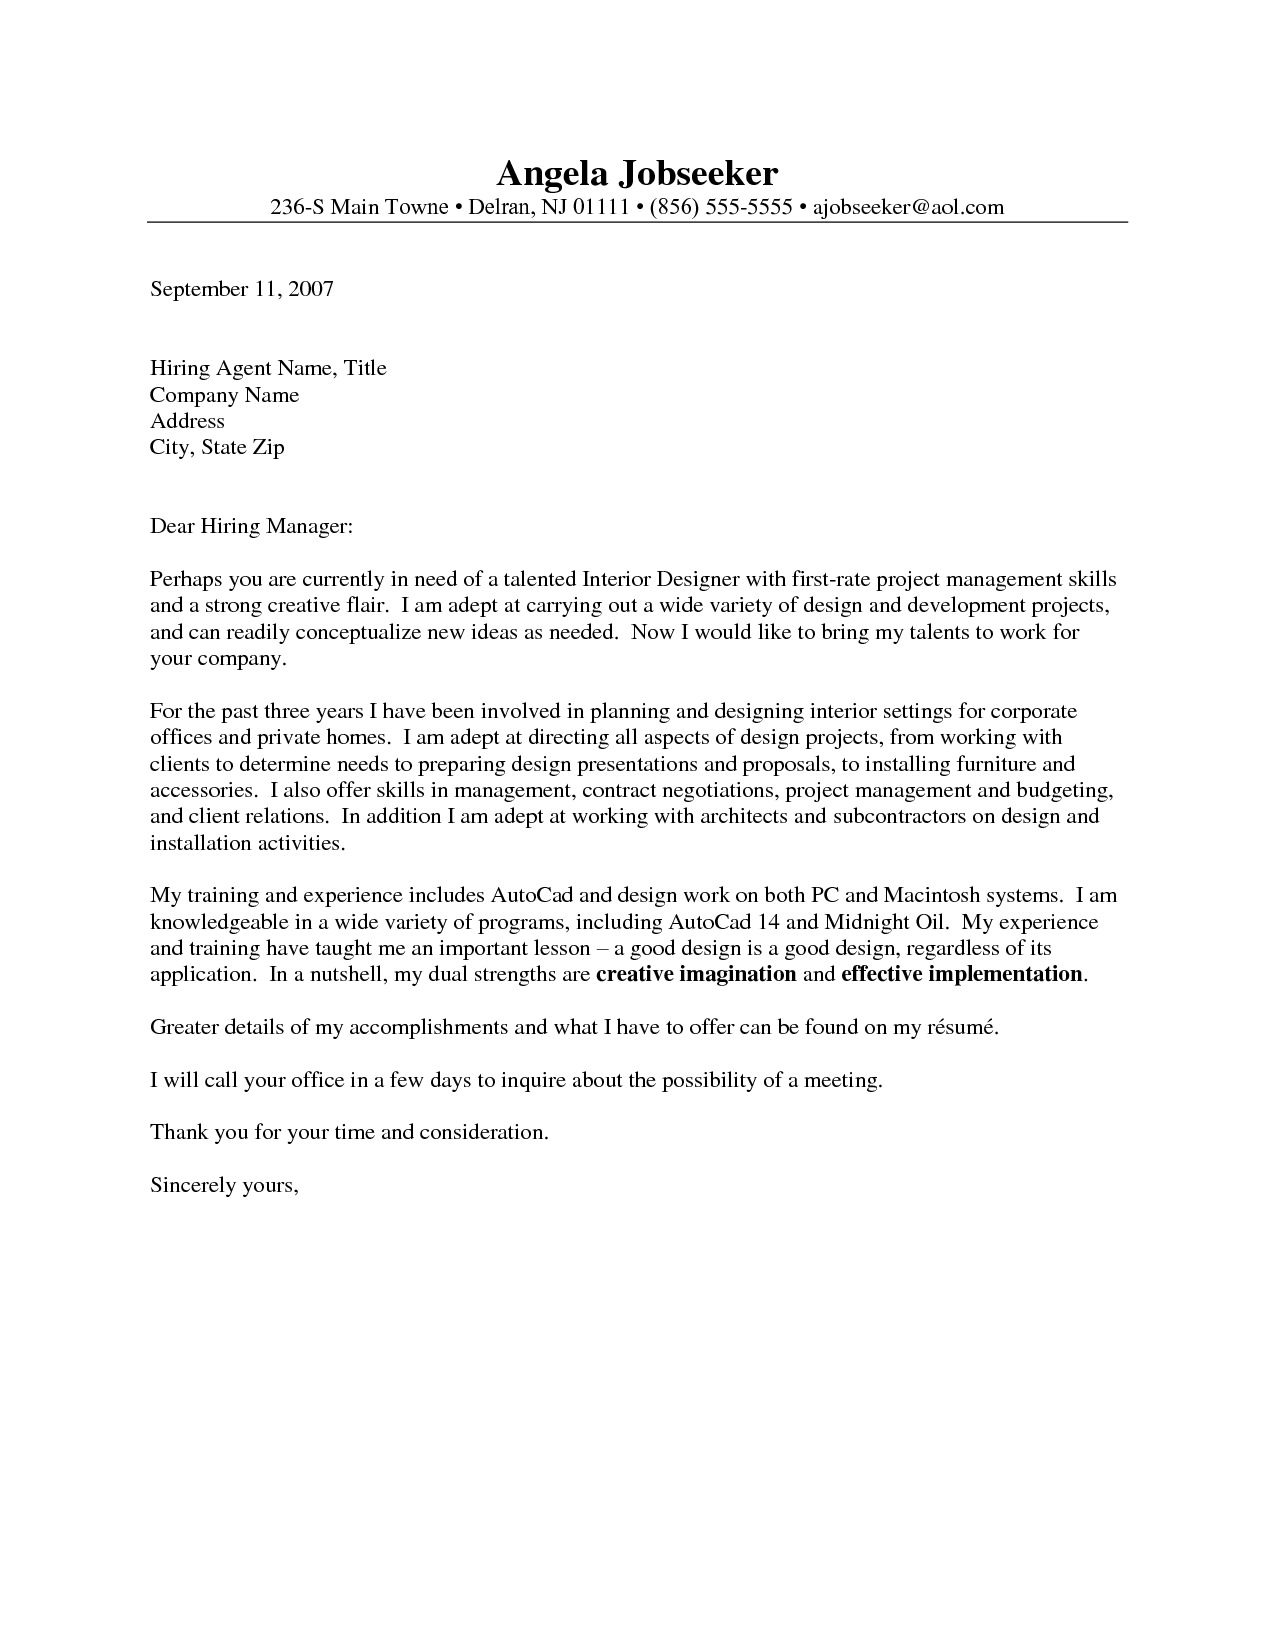 Interior Design Letter Of Agreement Template - Outstanding Cover Letter Examples